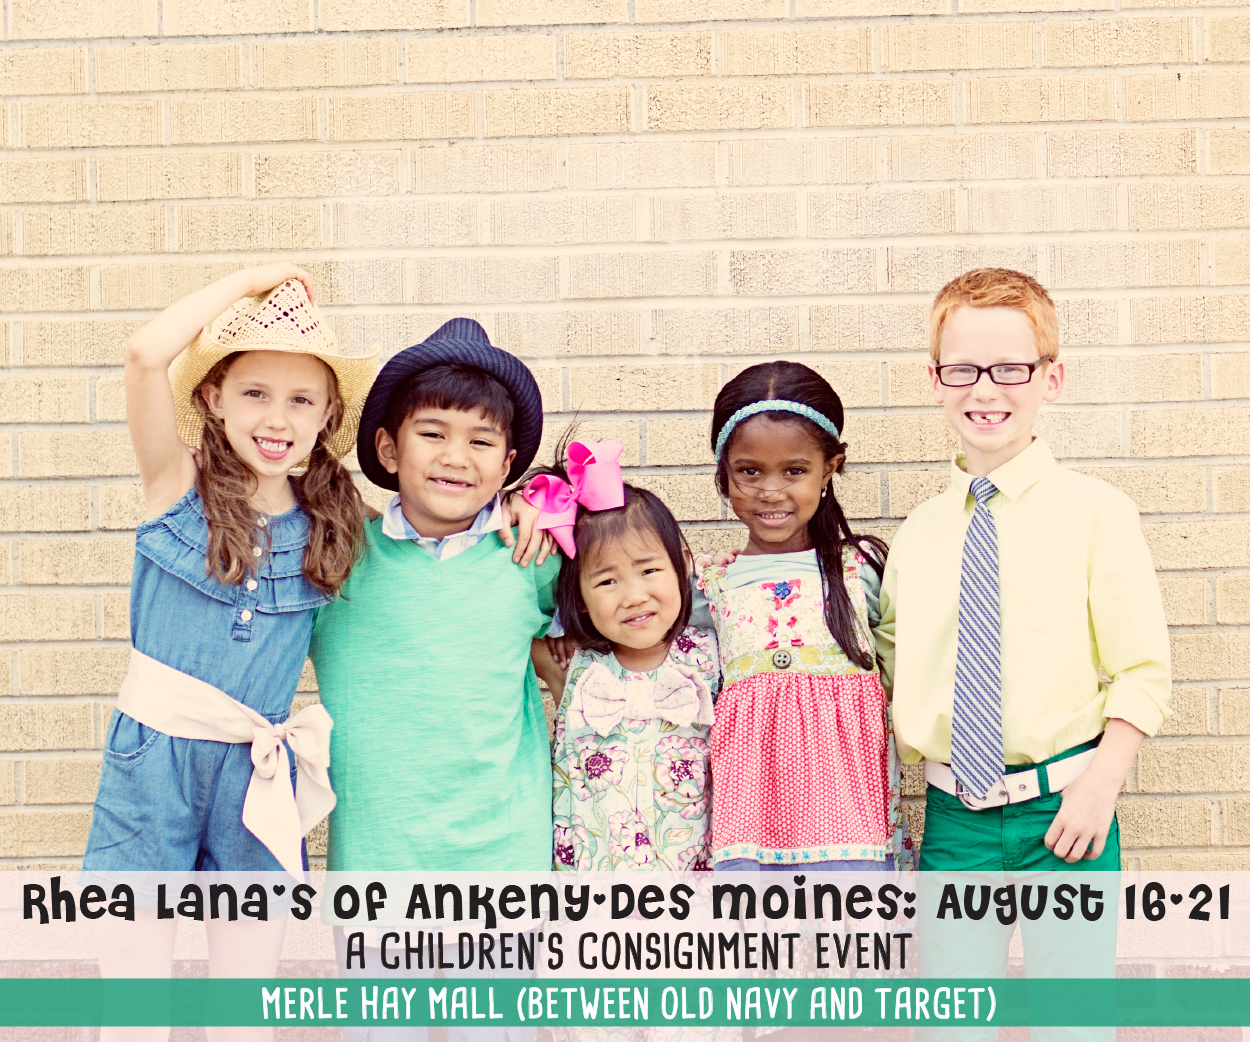 Rhea Lana's Children's Consignment: Ankeny & Des Moines